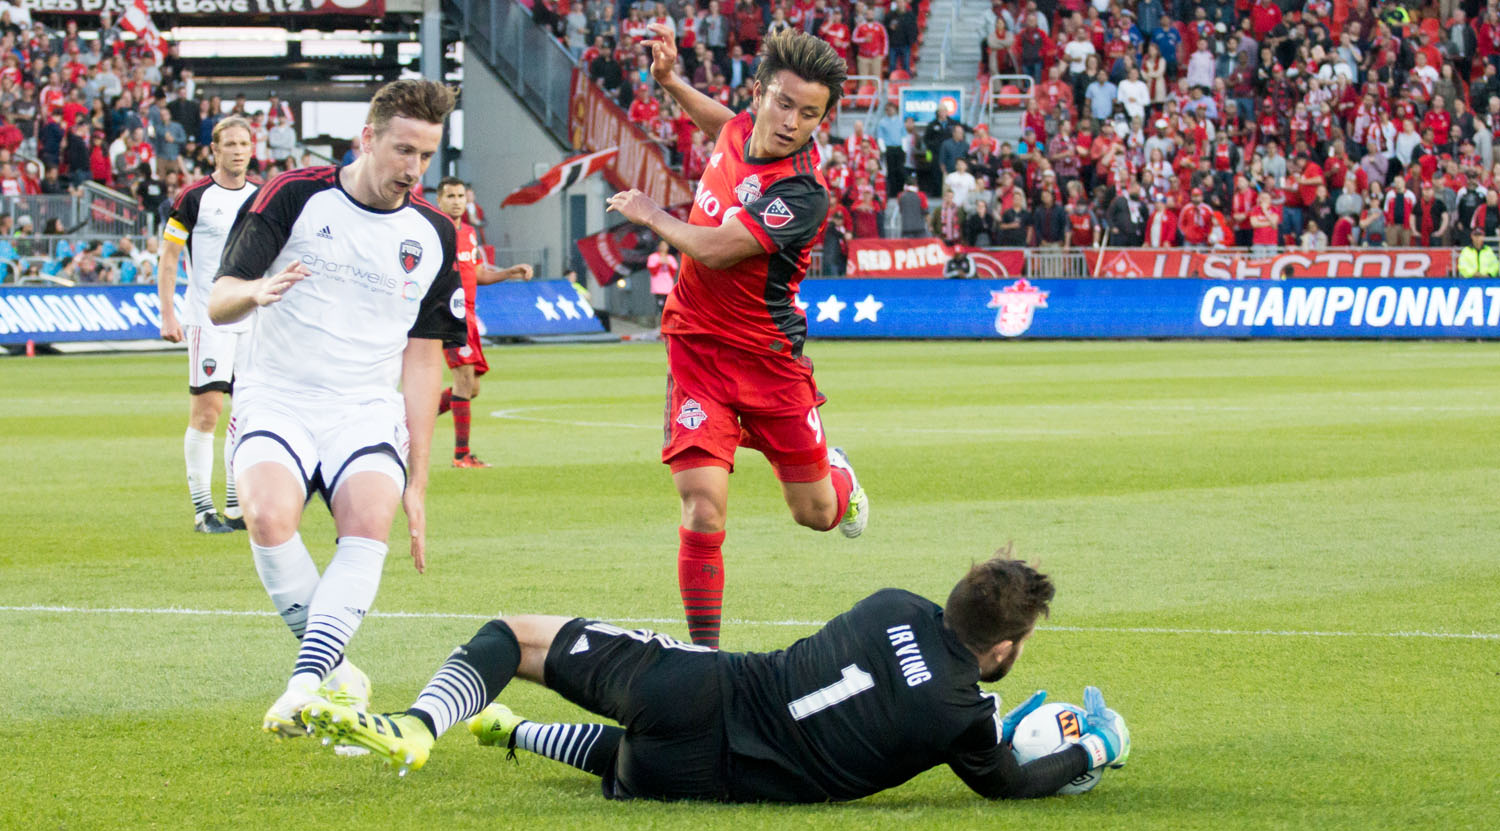 Tsubasa Endoh gets edged out by Ottawa Fury goalkeeper Callum Irving during the Canadian Championship in 2017.